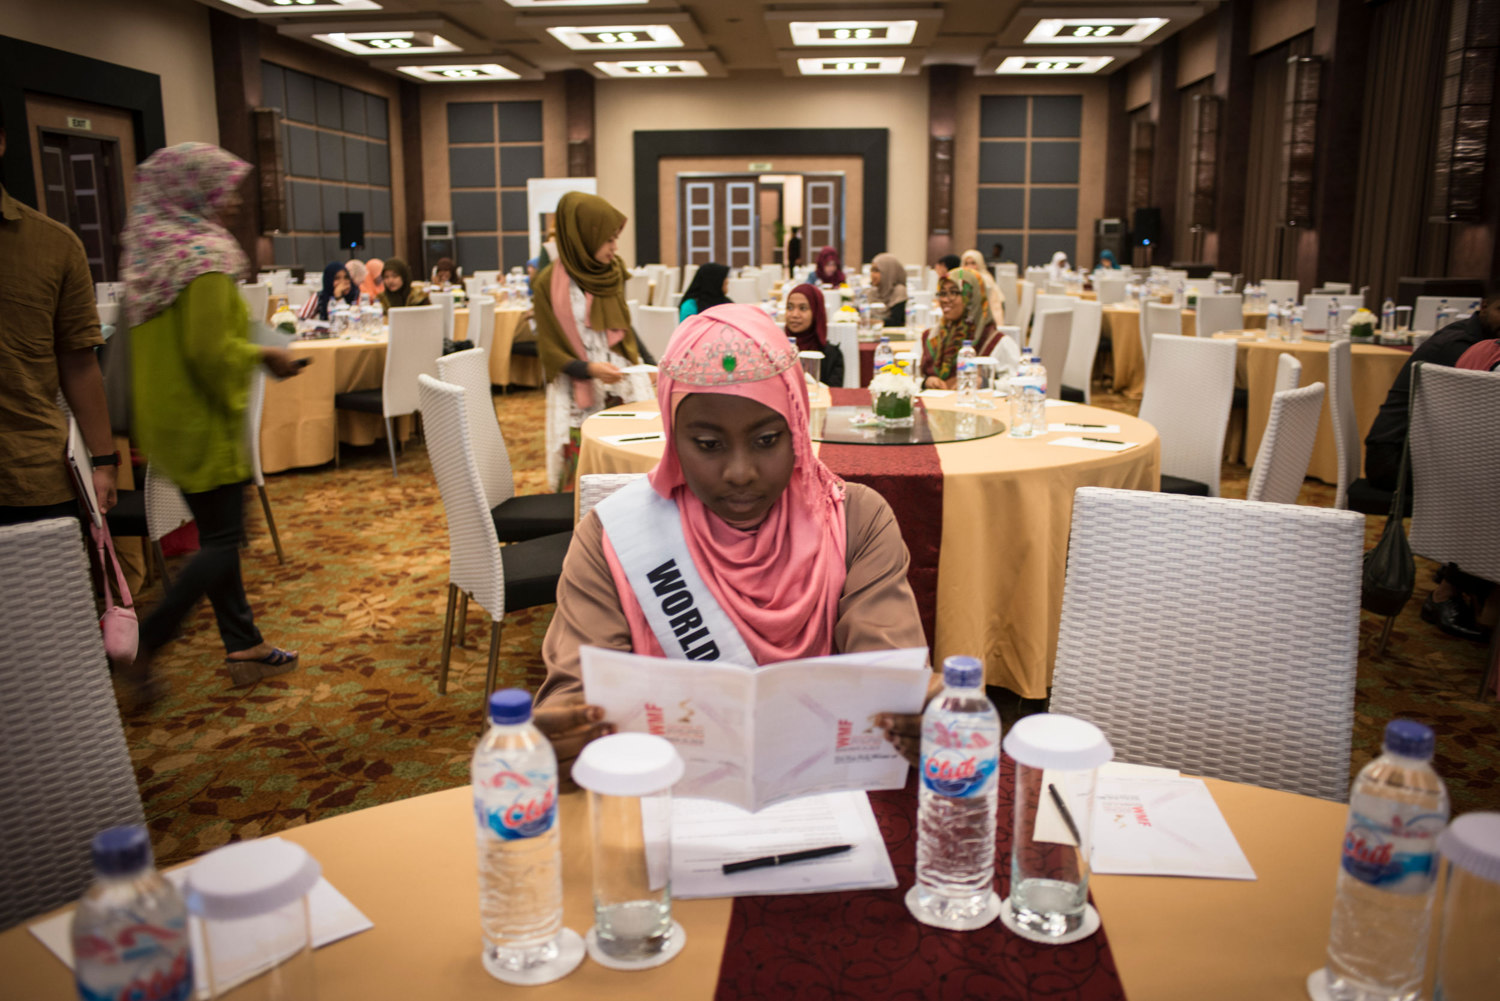 2013 Miss Muslimah winner Obabiyi Aisha Ajibola prepares for her speech on November 19th, 2014 in Yogakarta, Indonesia.